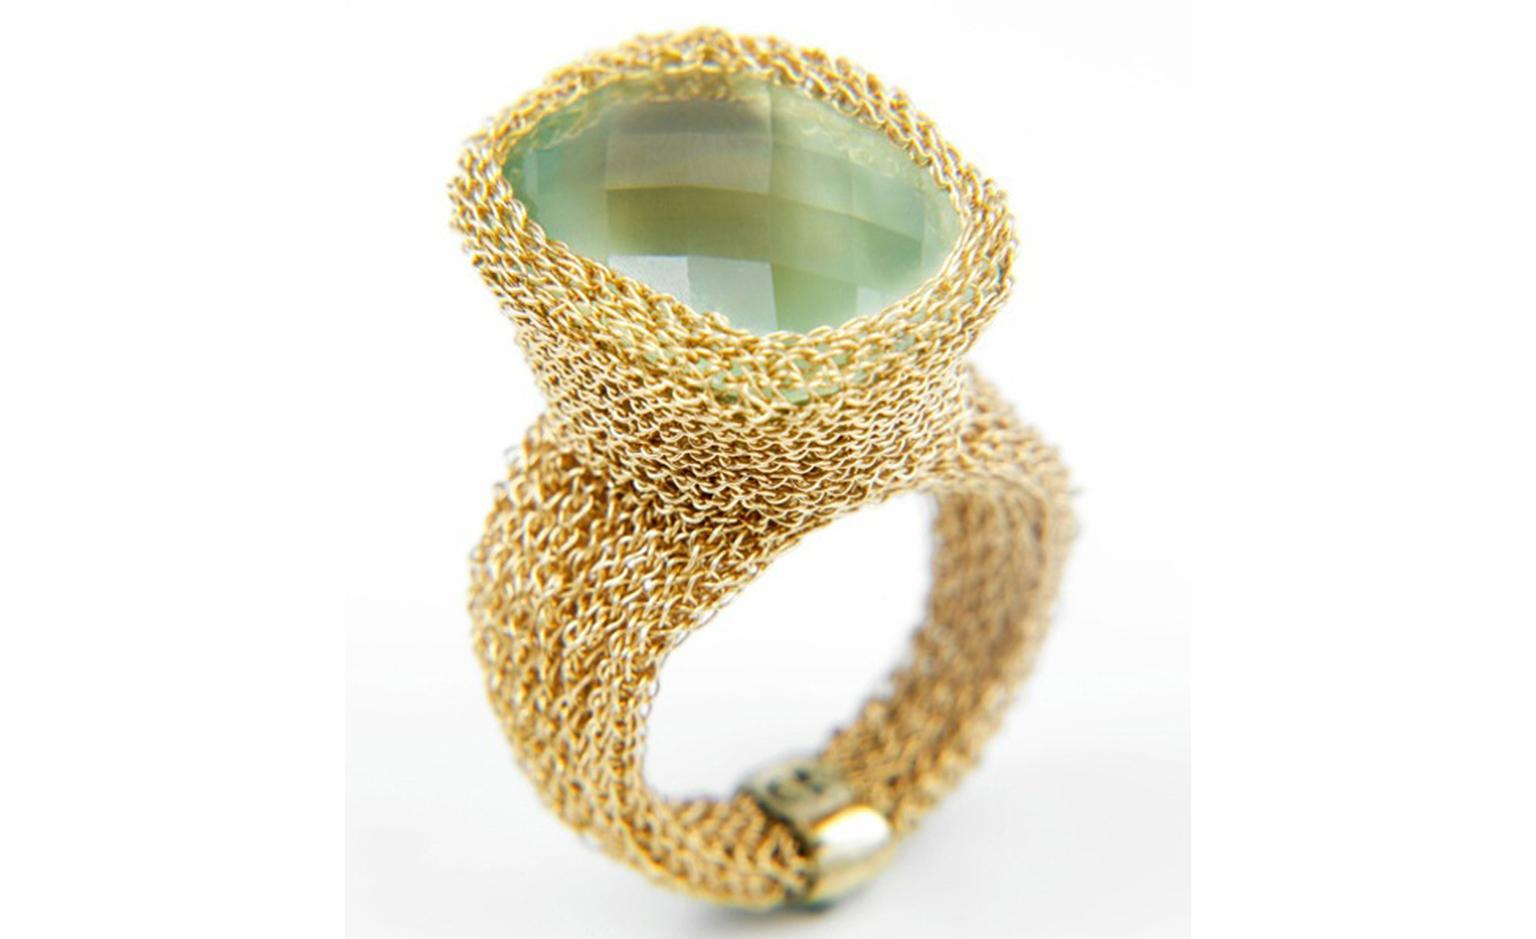 Rina Tairo 'Roman' woven gold ring with prehnite. £2,200